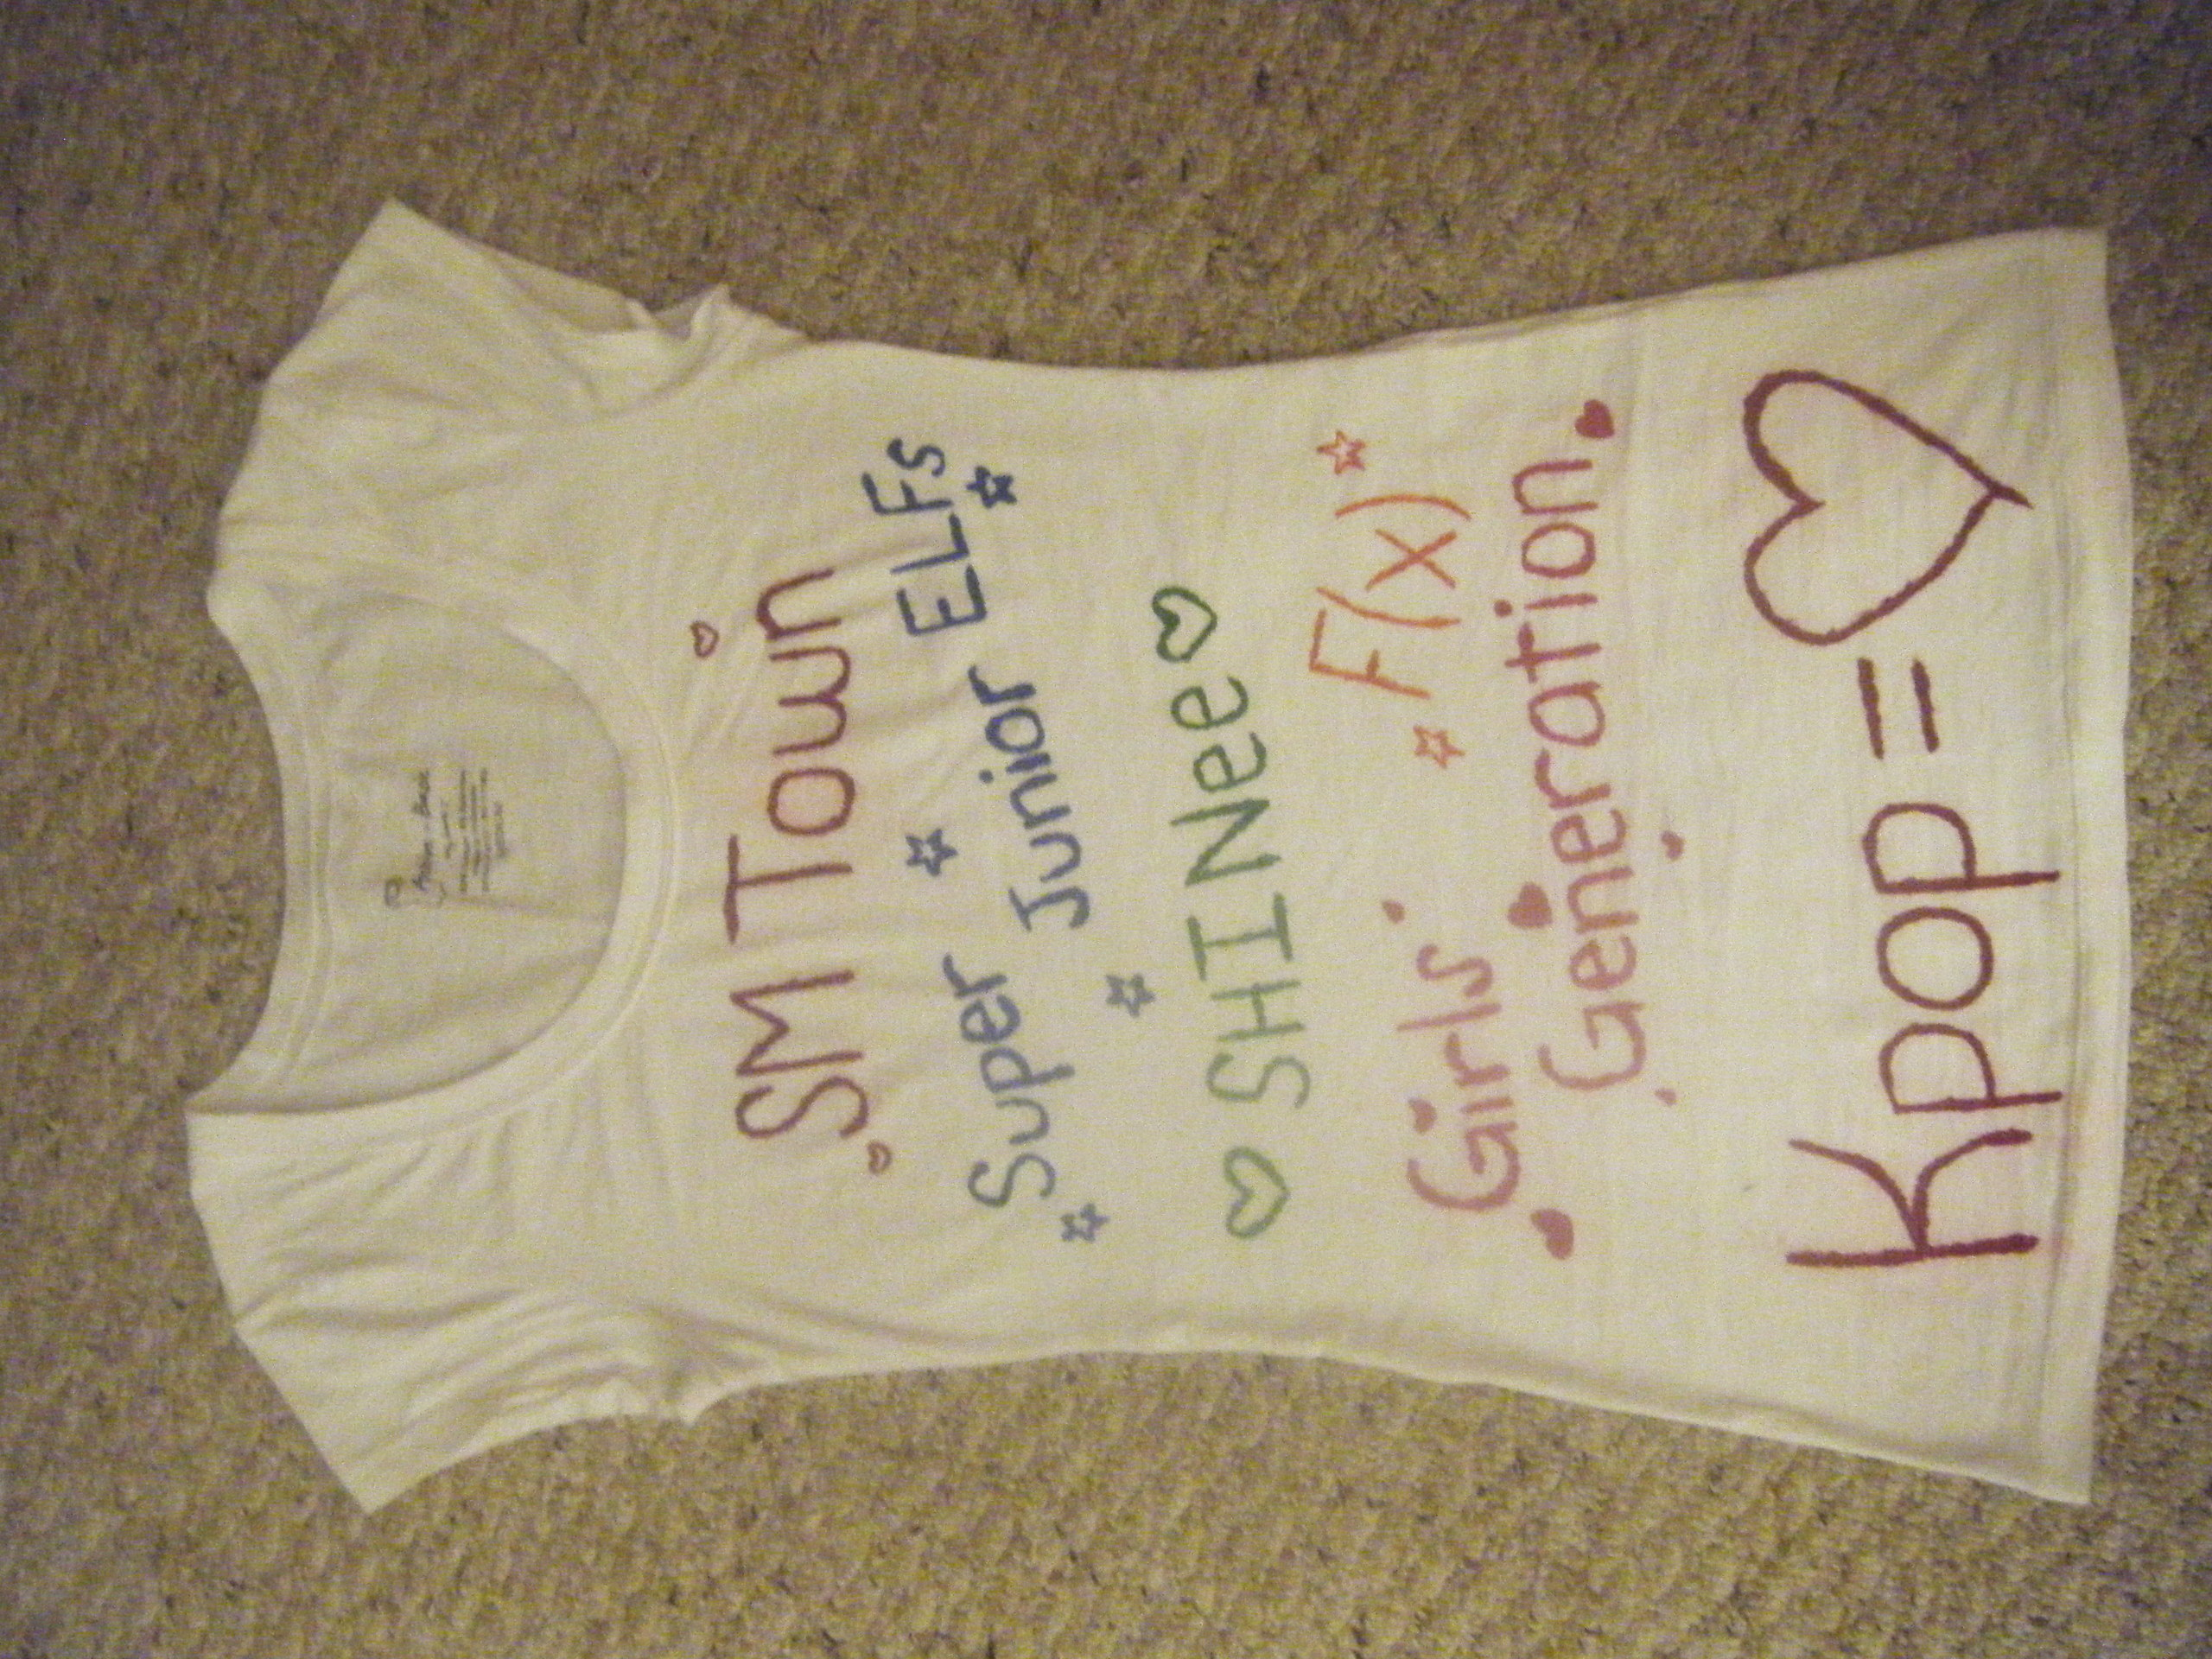 SM Town Live 2010 Concert in LA T-Shirt I made! ^_^ ASK BEFORE USING!